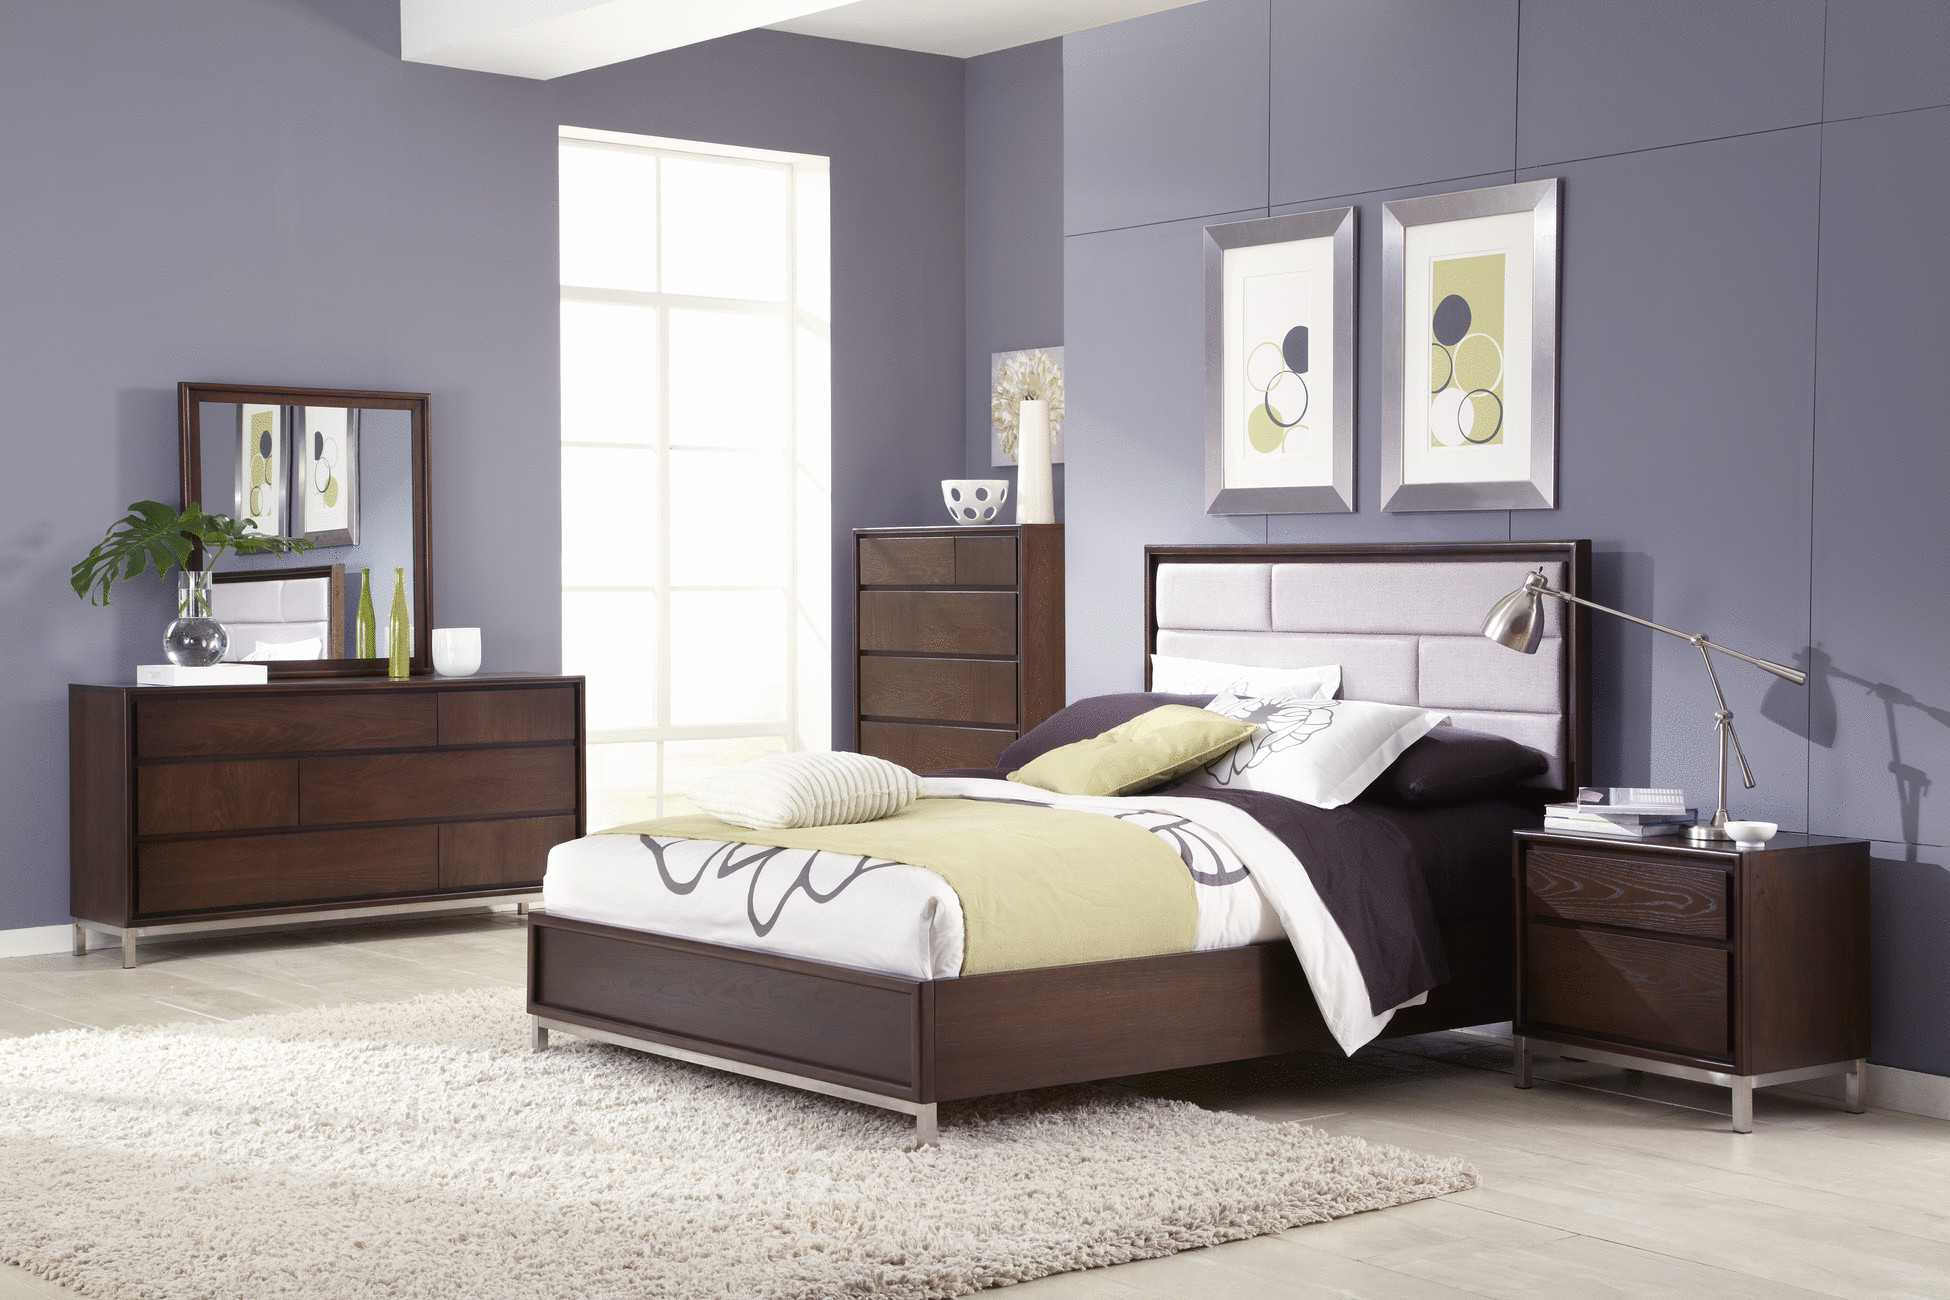 Casana Sandrine Upholstered King Bed Cx270931kk